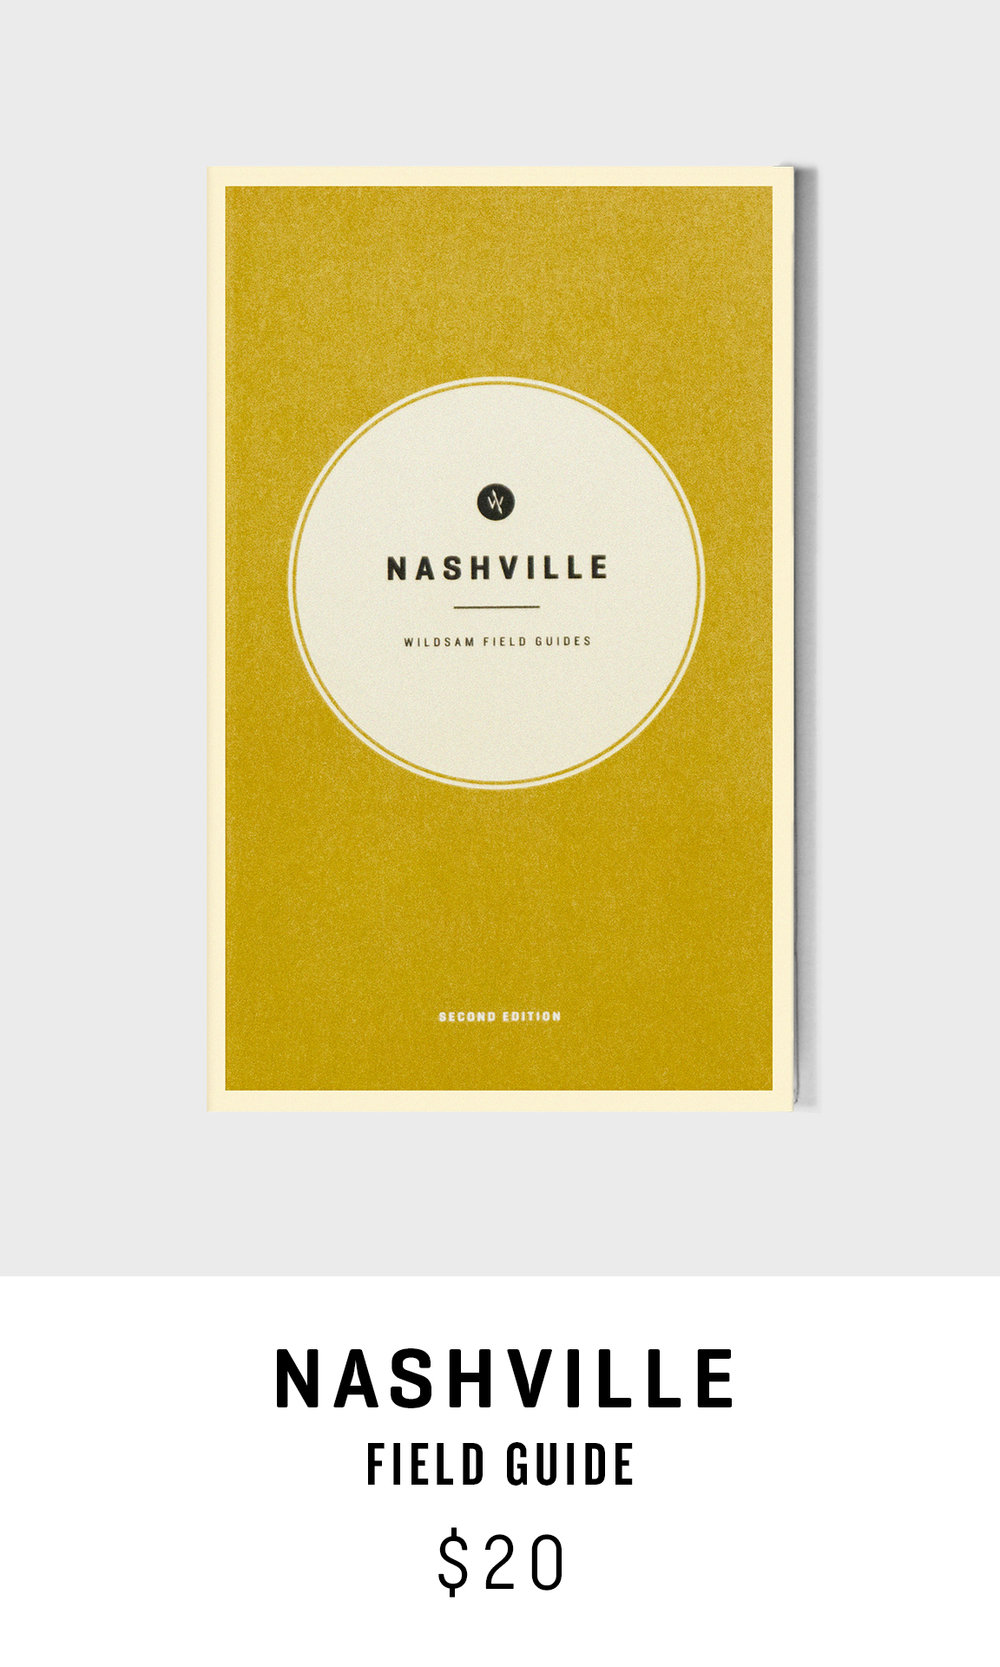 Nashville-Product-CARD.jpg